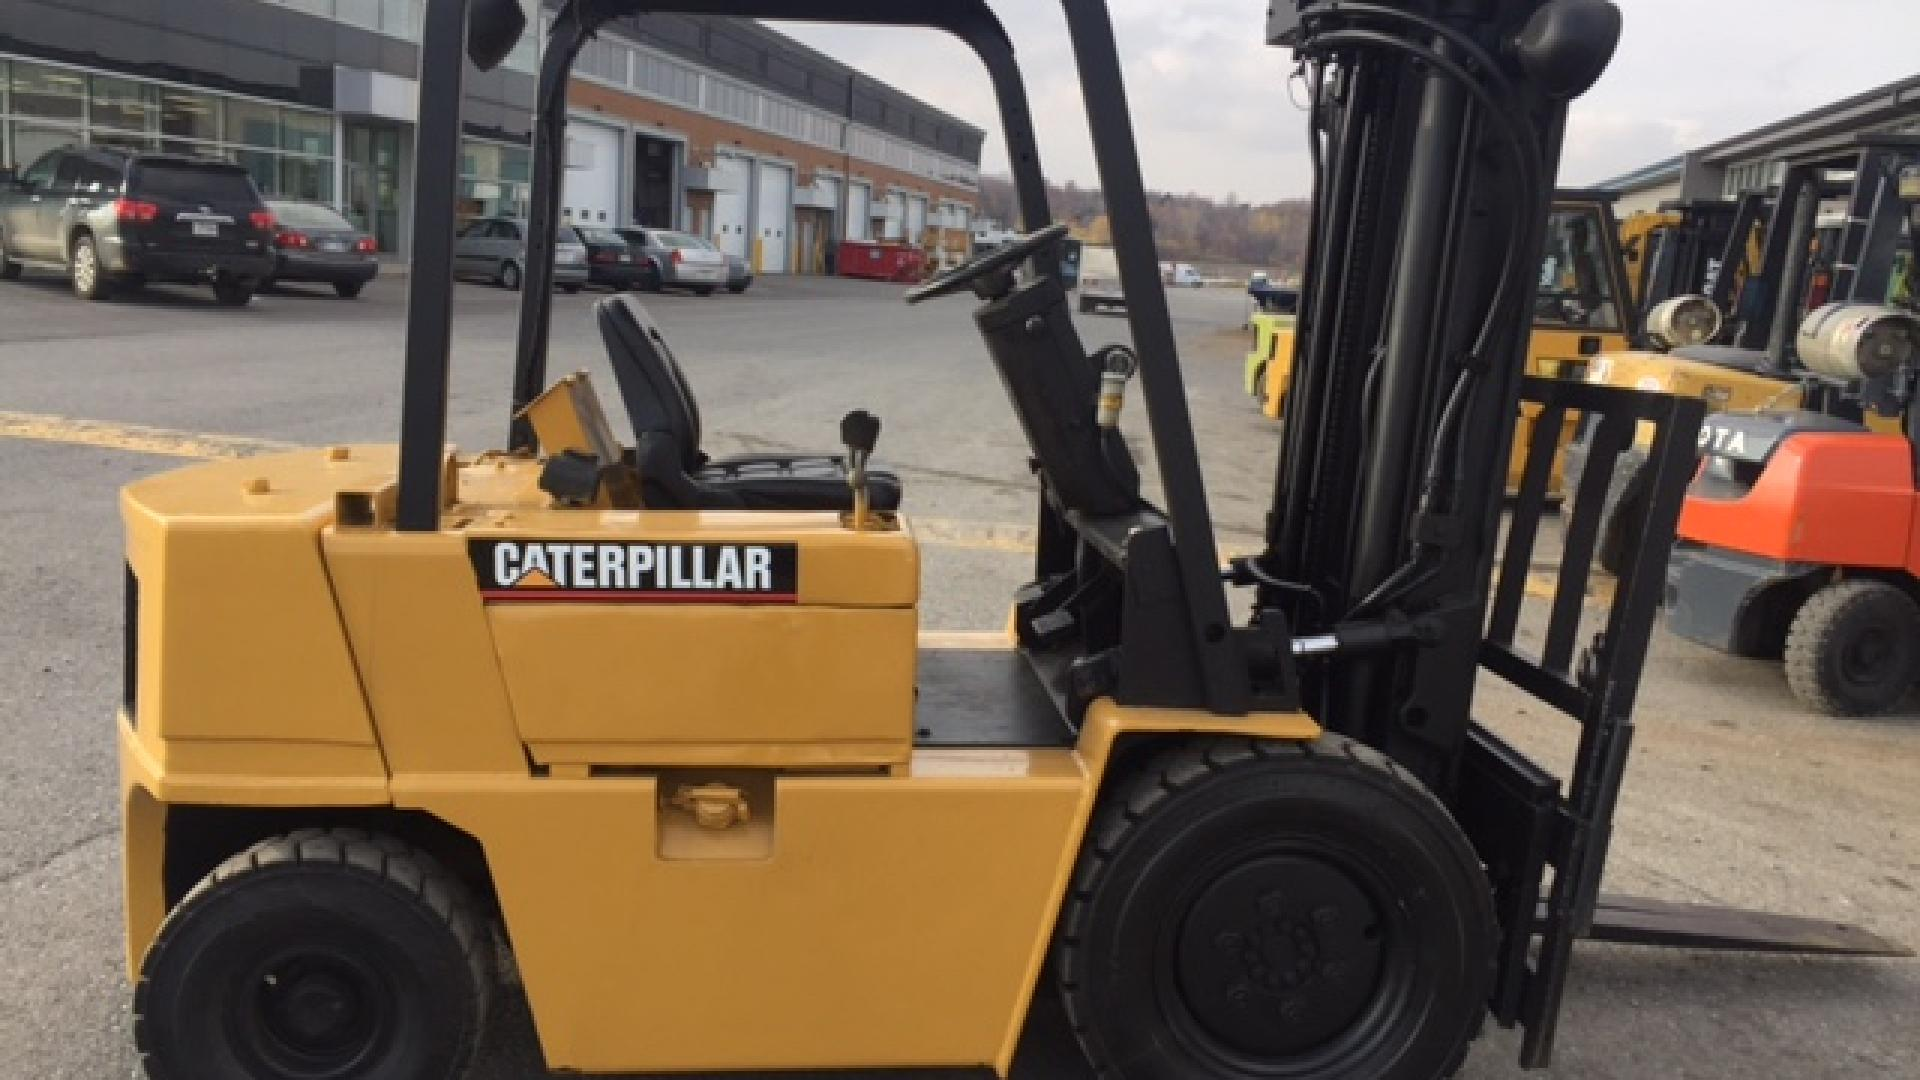 Pneumatic forklift for sale Caterpillar #8649 | A1 Machinery